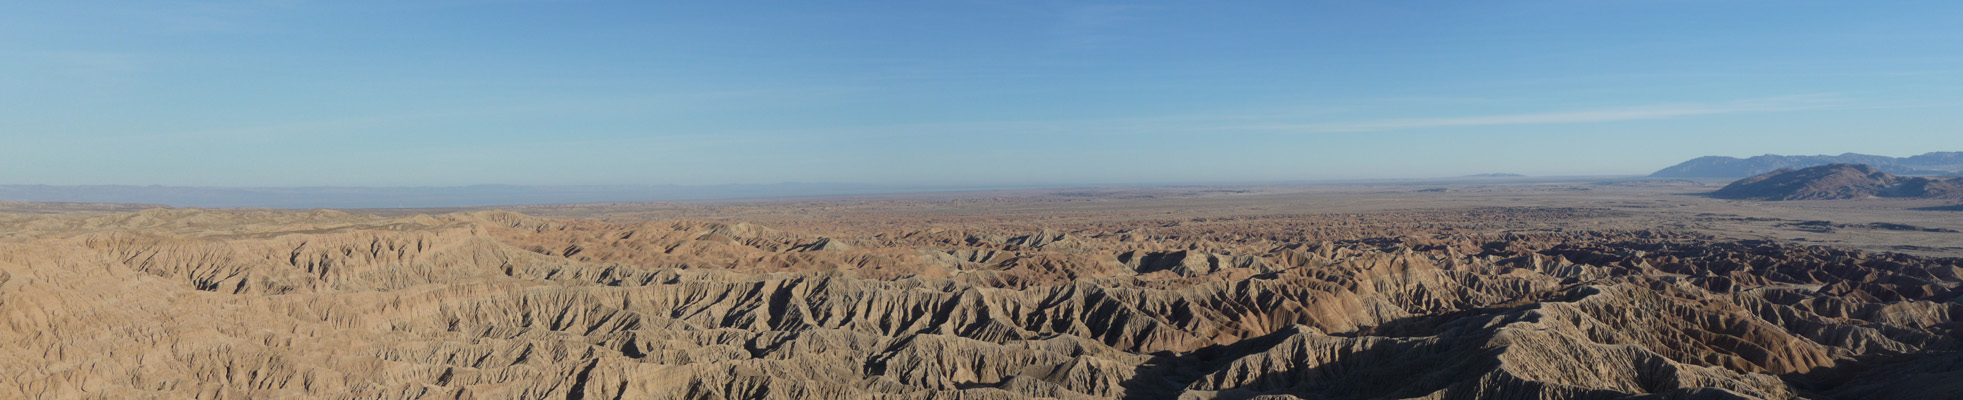 Foss Point looking east Anza Borrego